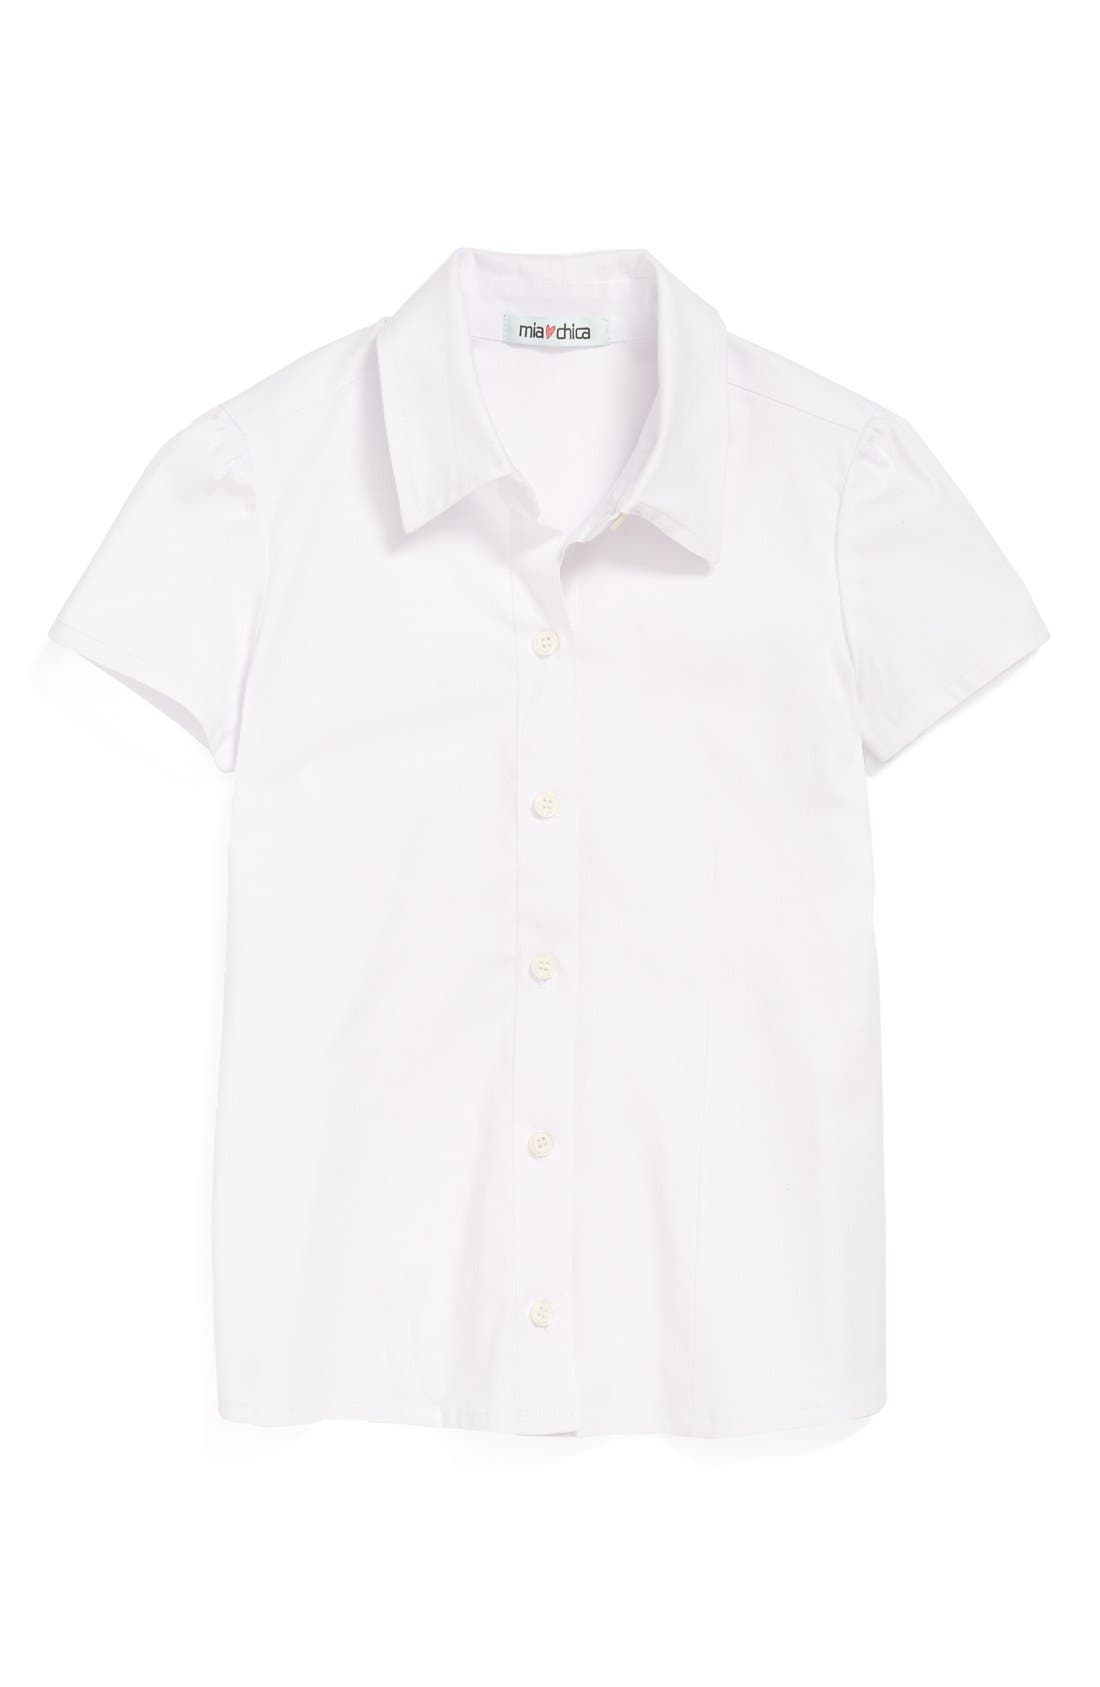 Alternate Image 1 Selected - Mia Chica Short Sleeve Stretch Cotton Blouse (Big Girls) (Online Only)